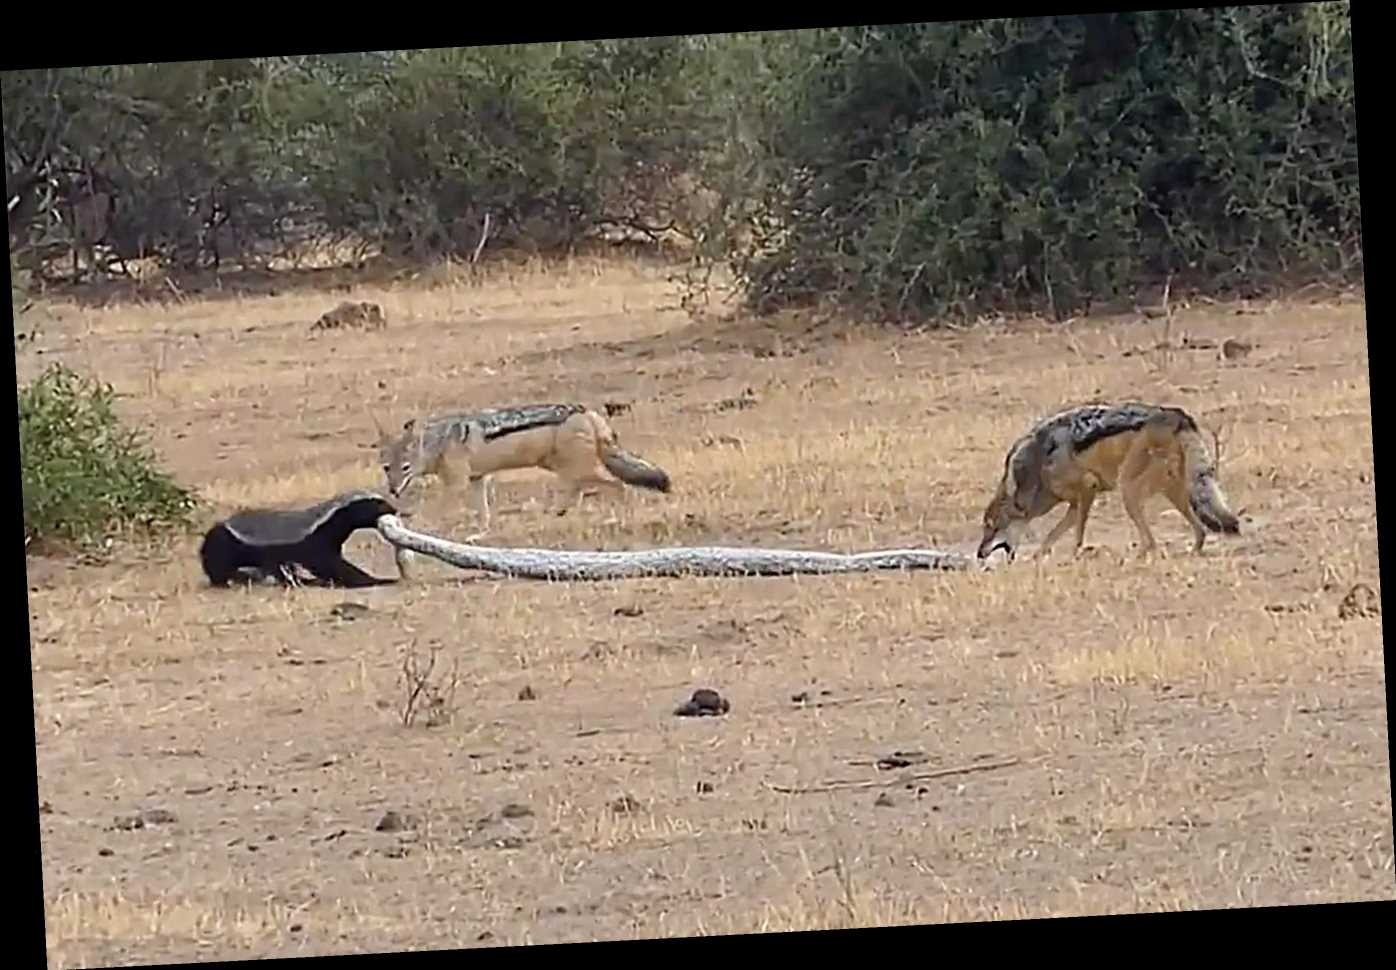 WATCH: Incredible Footage Shows Python, Honey Badger and a Pair of Jackals Fighting in Botswana